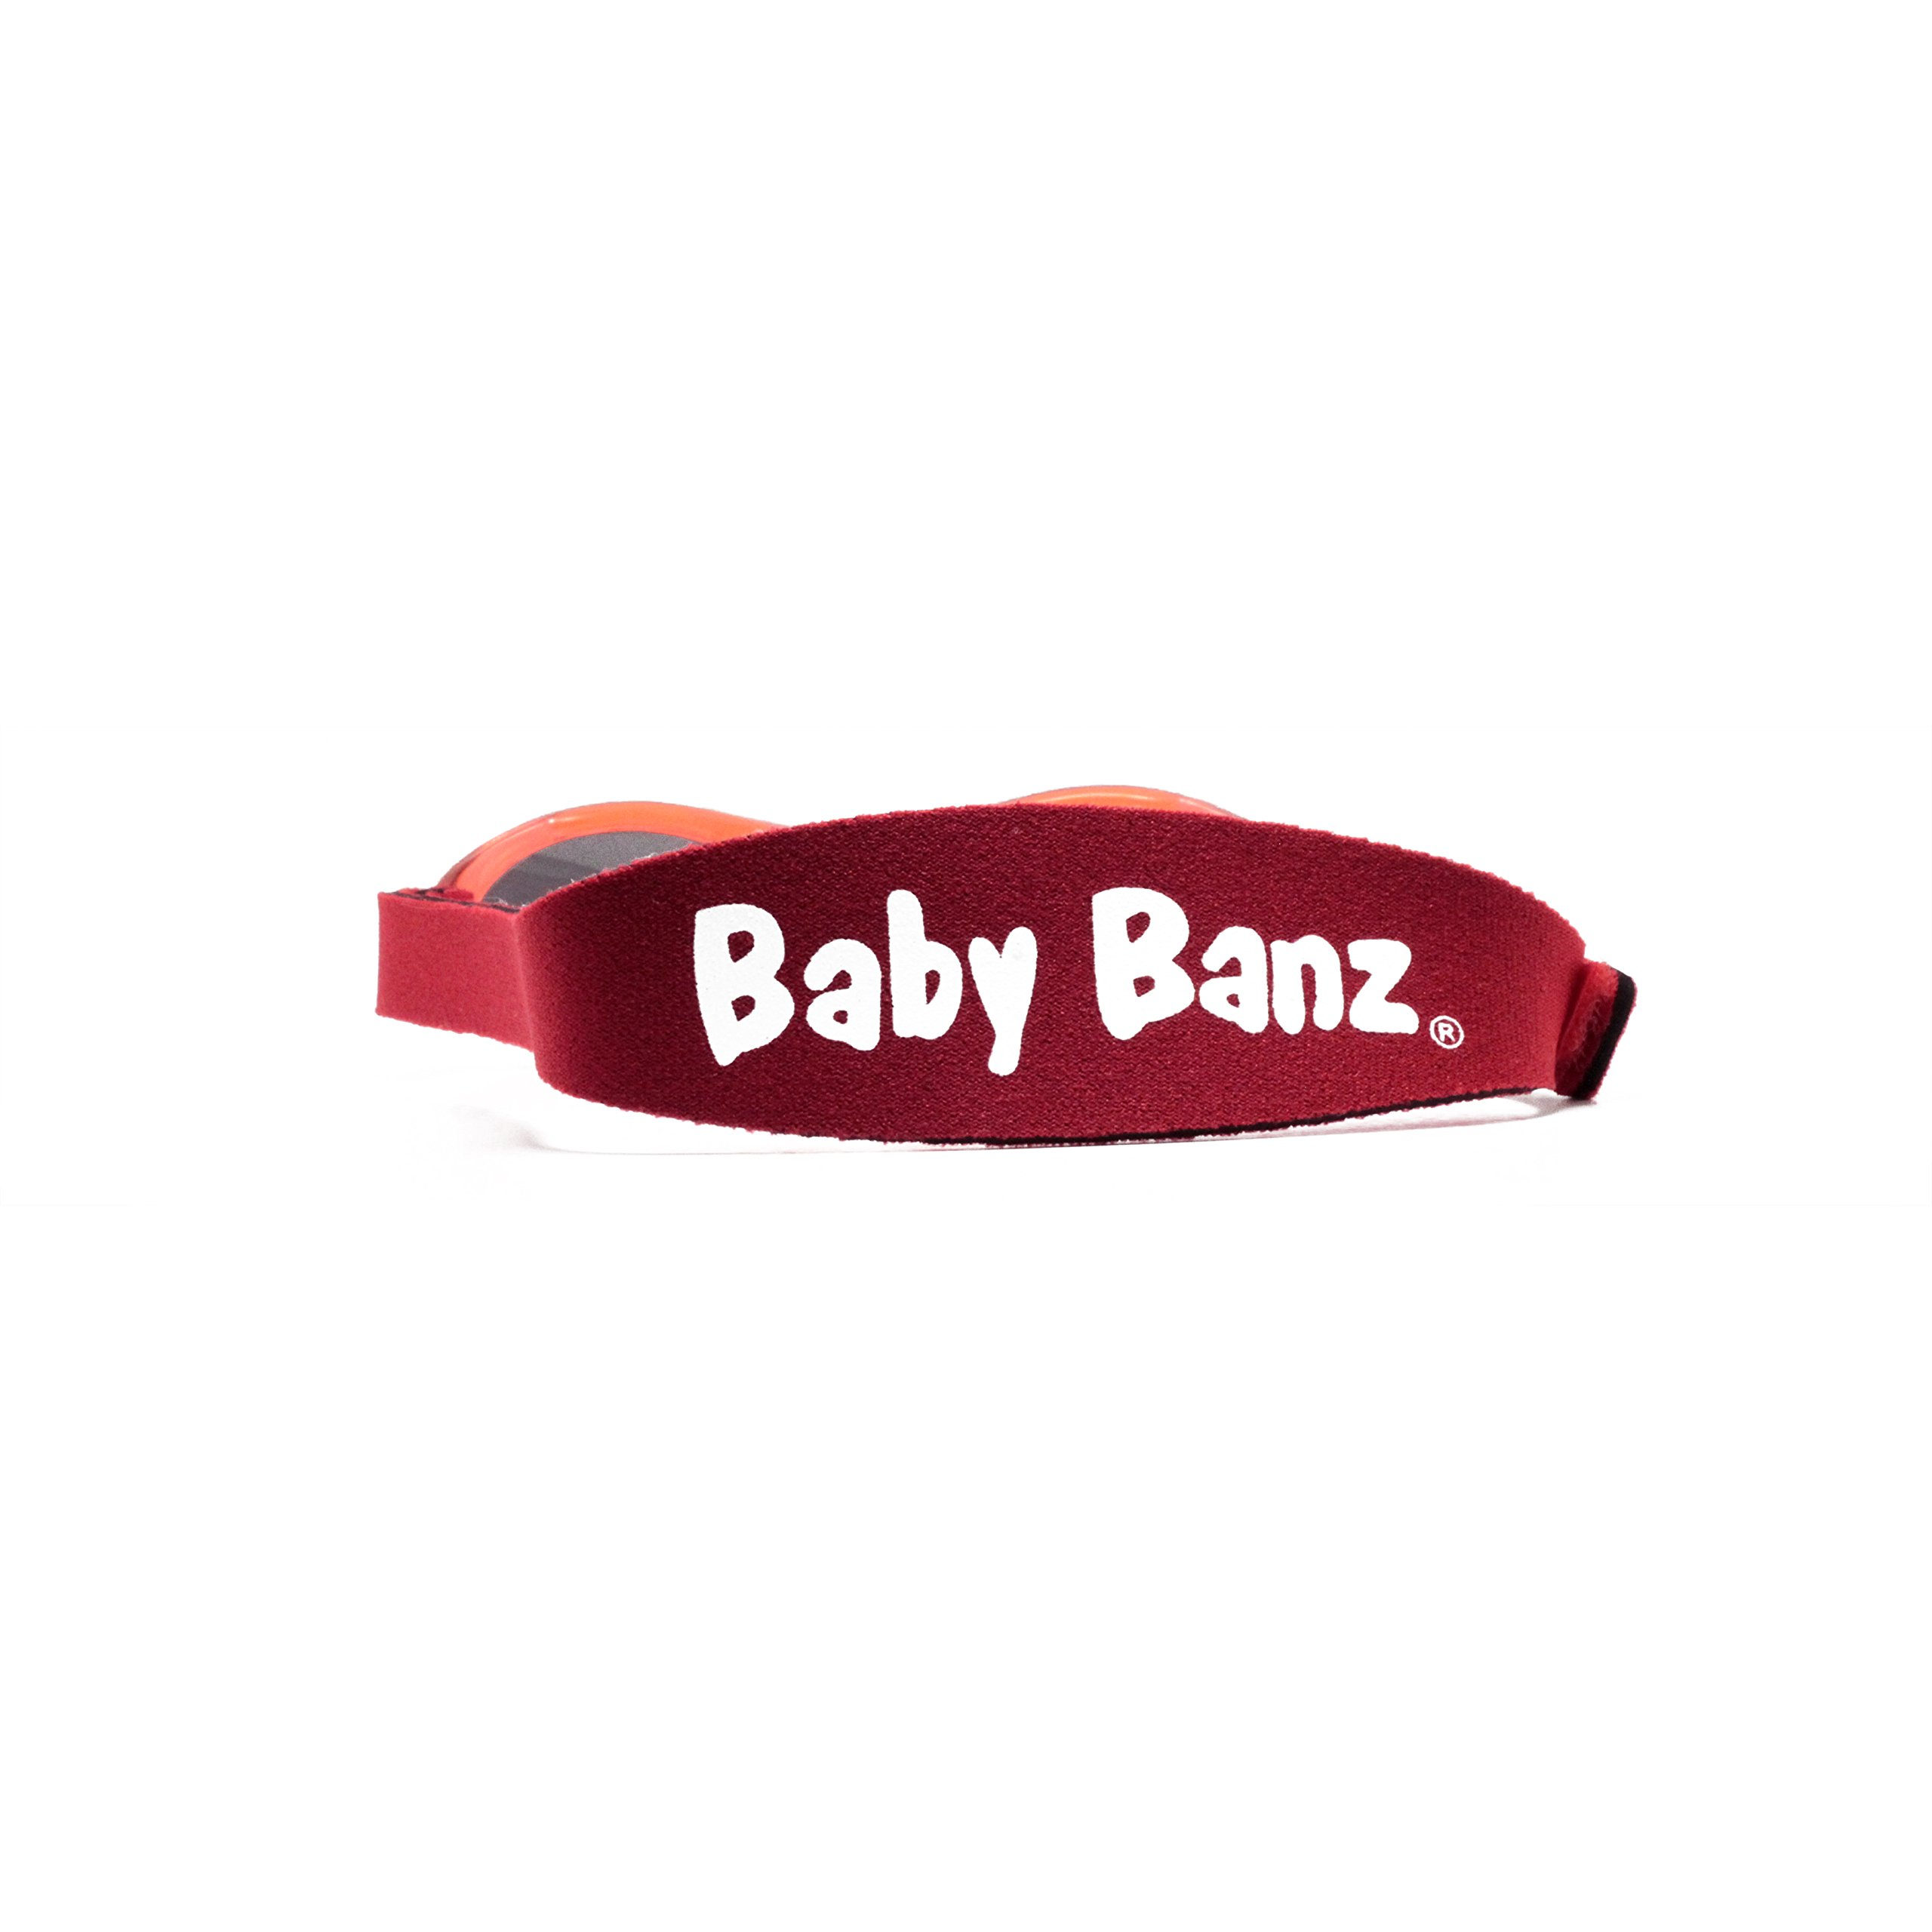 Baby Banz Sunglasses Infant Sun Protection – Ages 0-2 Years – THE BEST SUNGLASSES FOR BABIES & TODDLERS – Industry Leading Sun Protection Rating – 100% UV by Baby Banz